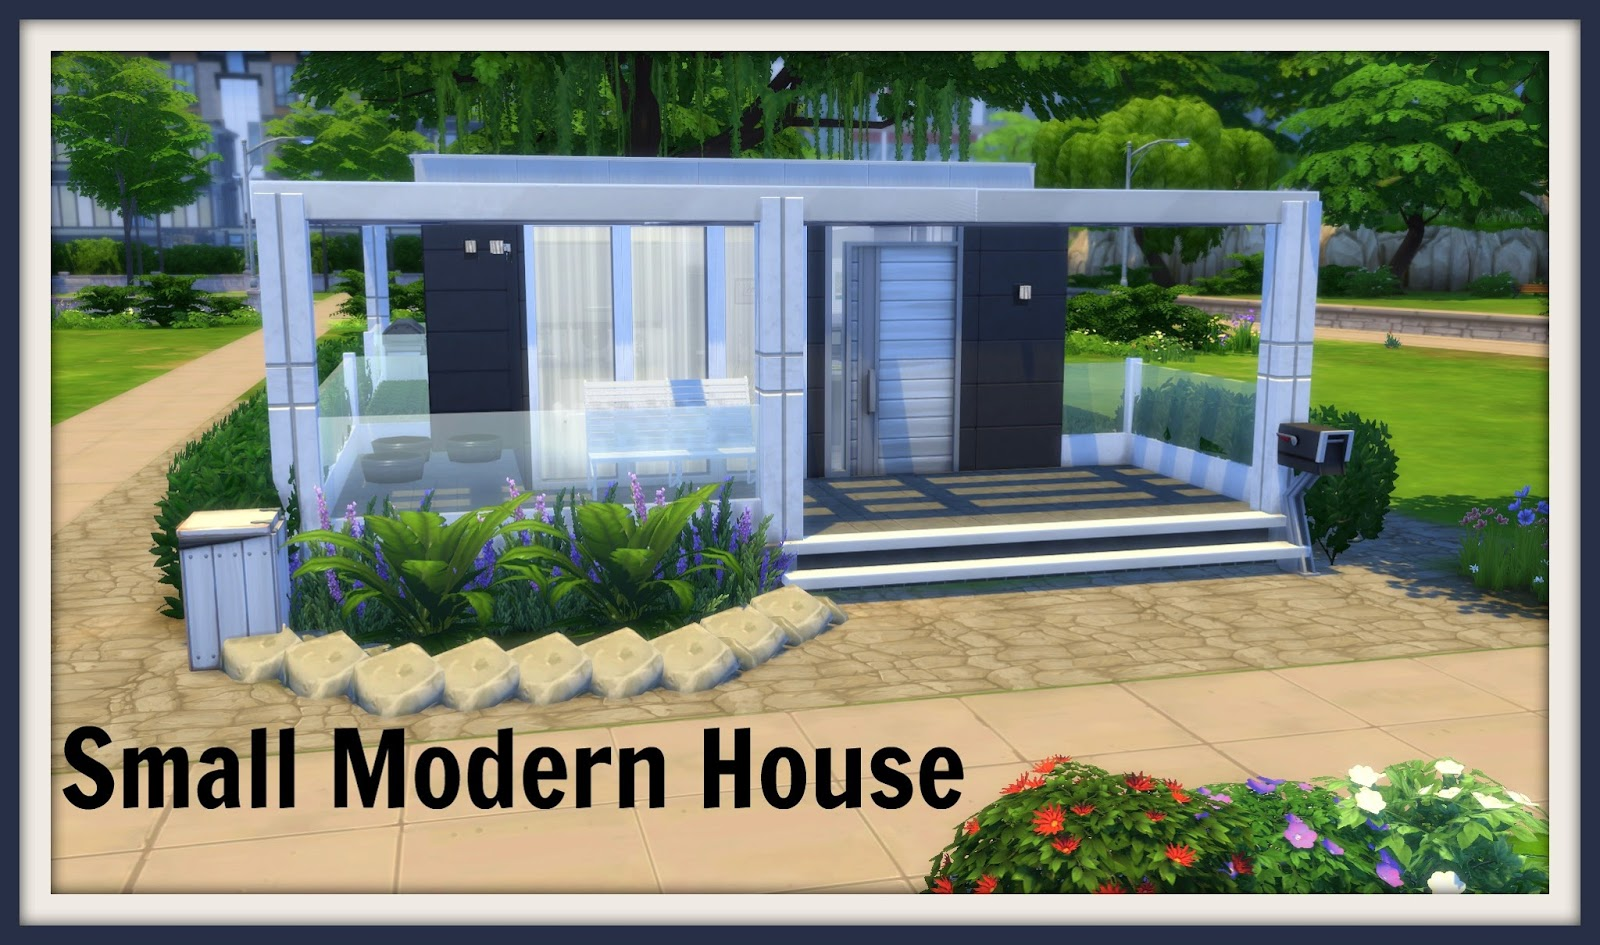 Tremendous Sims 4 Small Modern House Dinha Largest Home Design Picture Inspirations Pitcheantrous